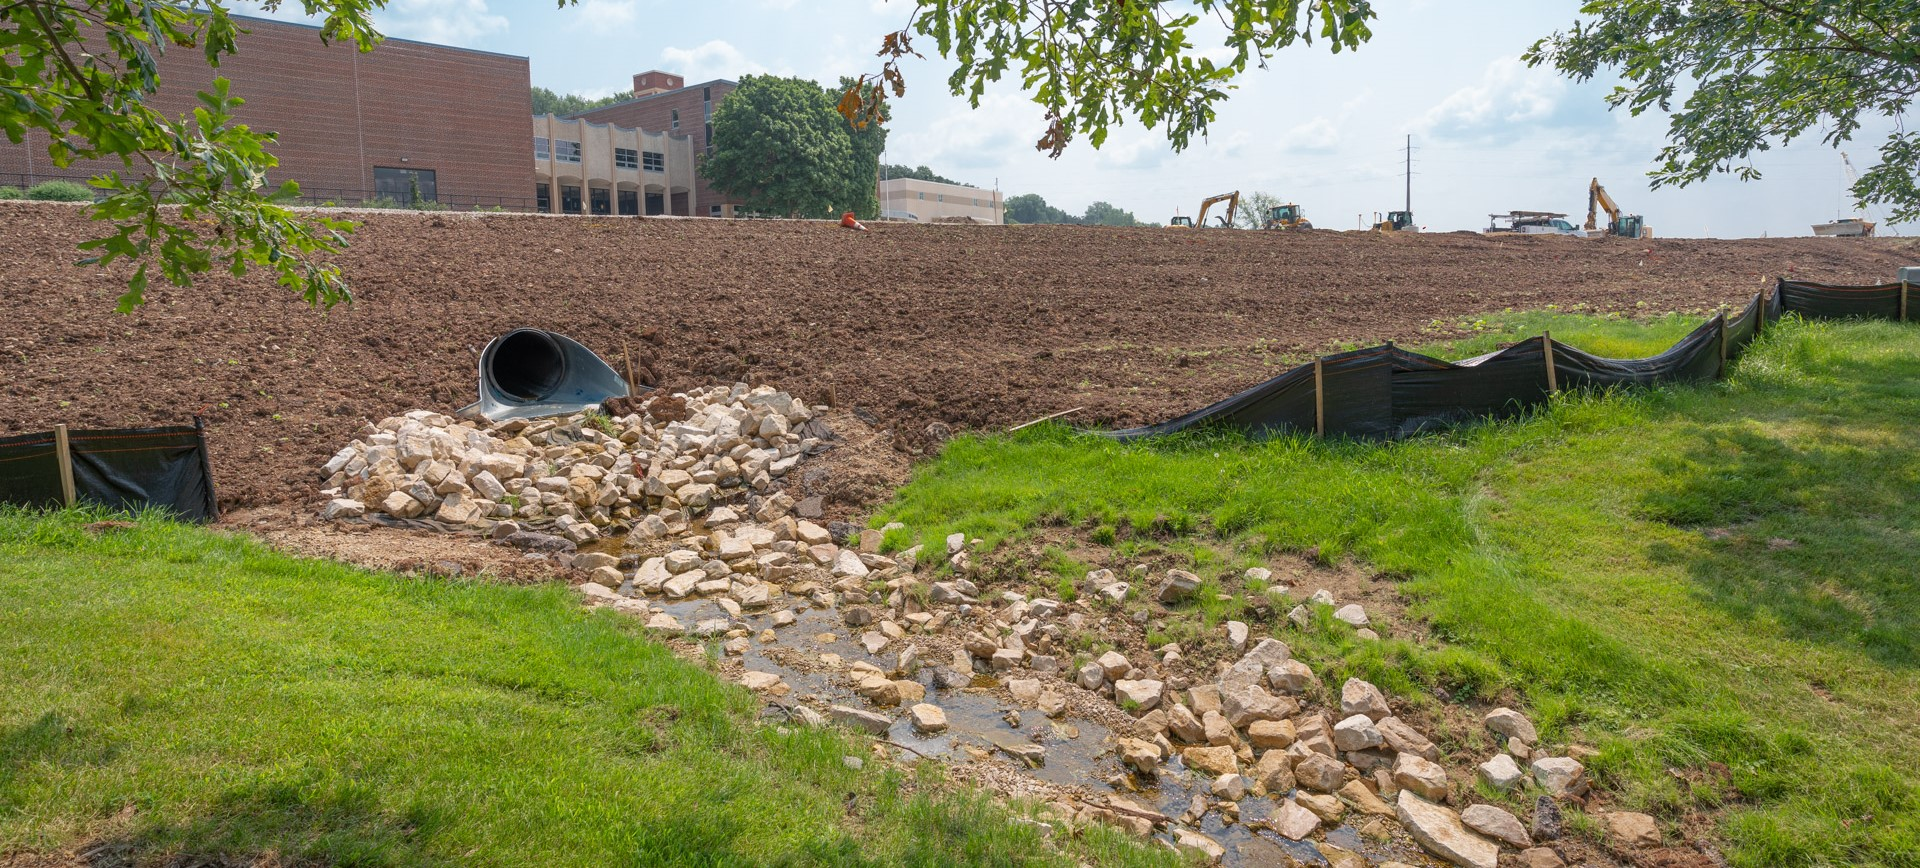 Image of the landscaping near spring tunnel under the roadway